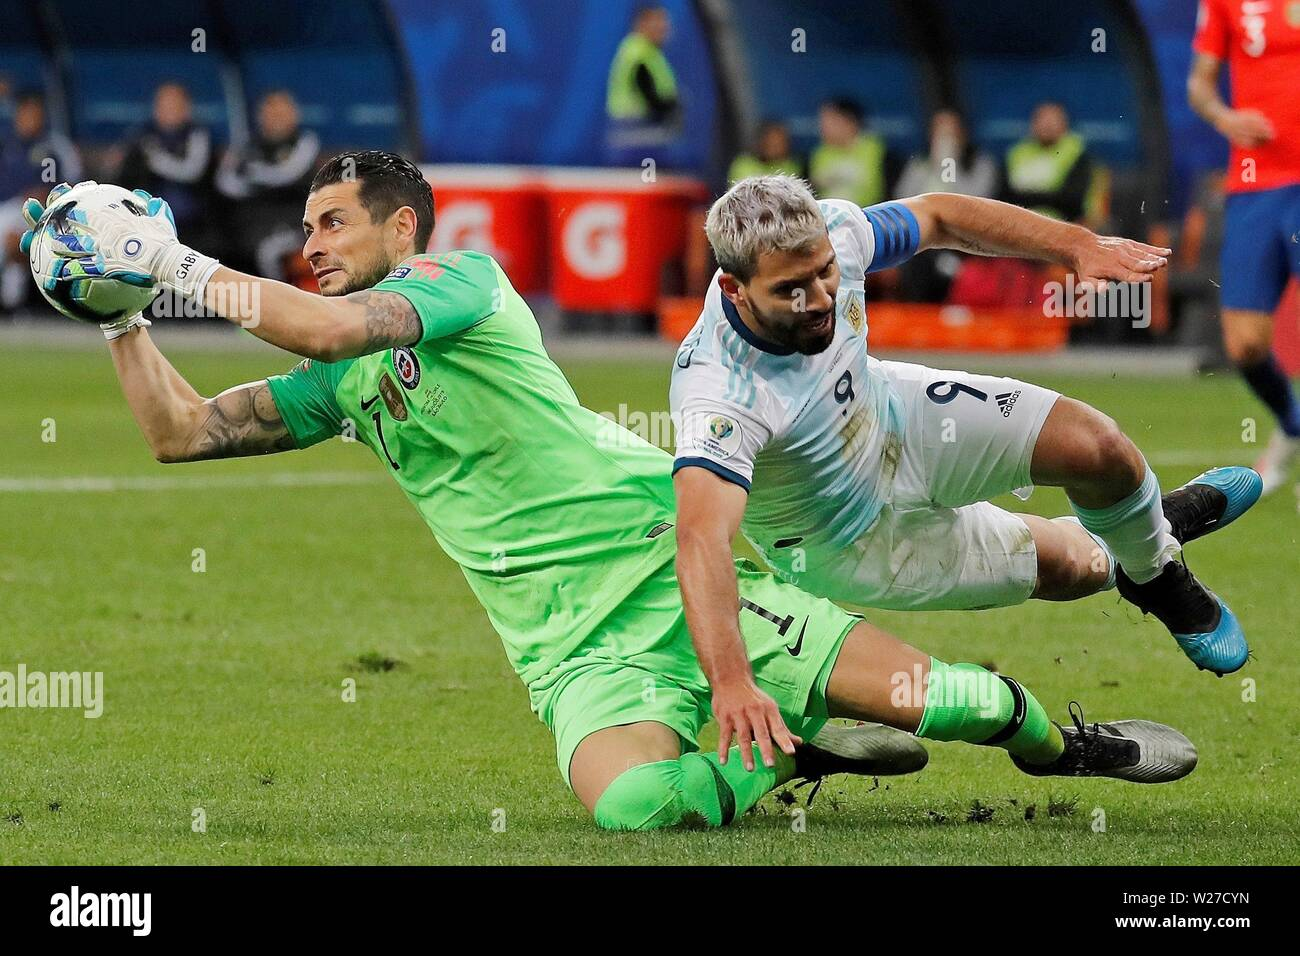 Sao Paulo, Brazil. 06th July, 2019. Chile's golakeeper Gabriel Arias (L) vies for the ball with Argentina's Kun Aguero during the Copa America 2019 3rd place soccer match between Argentina and Chile, at Arena Corinthians Stadium in Sao Paulo, Brazil, 6 July 2019. Credit: Paulo Whitaker/EFE/Alamy Live News Stock Photo